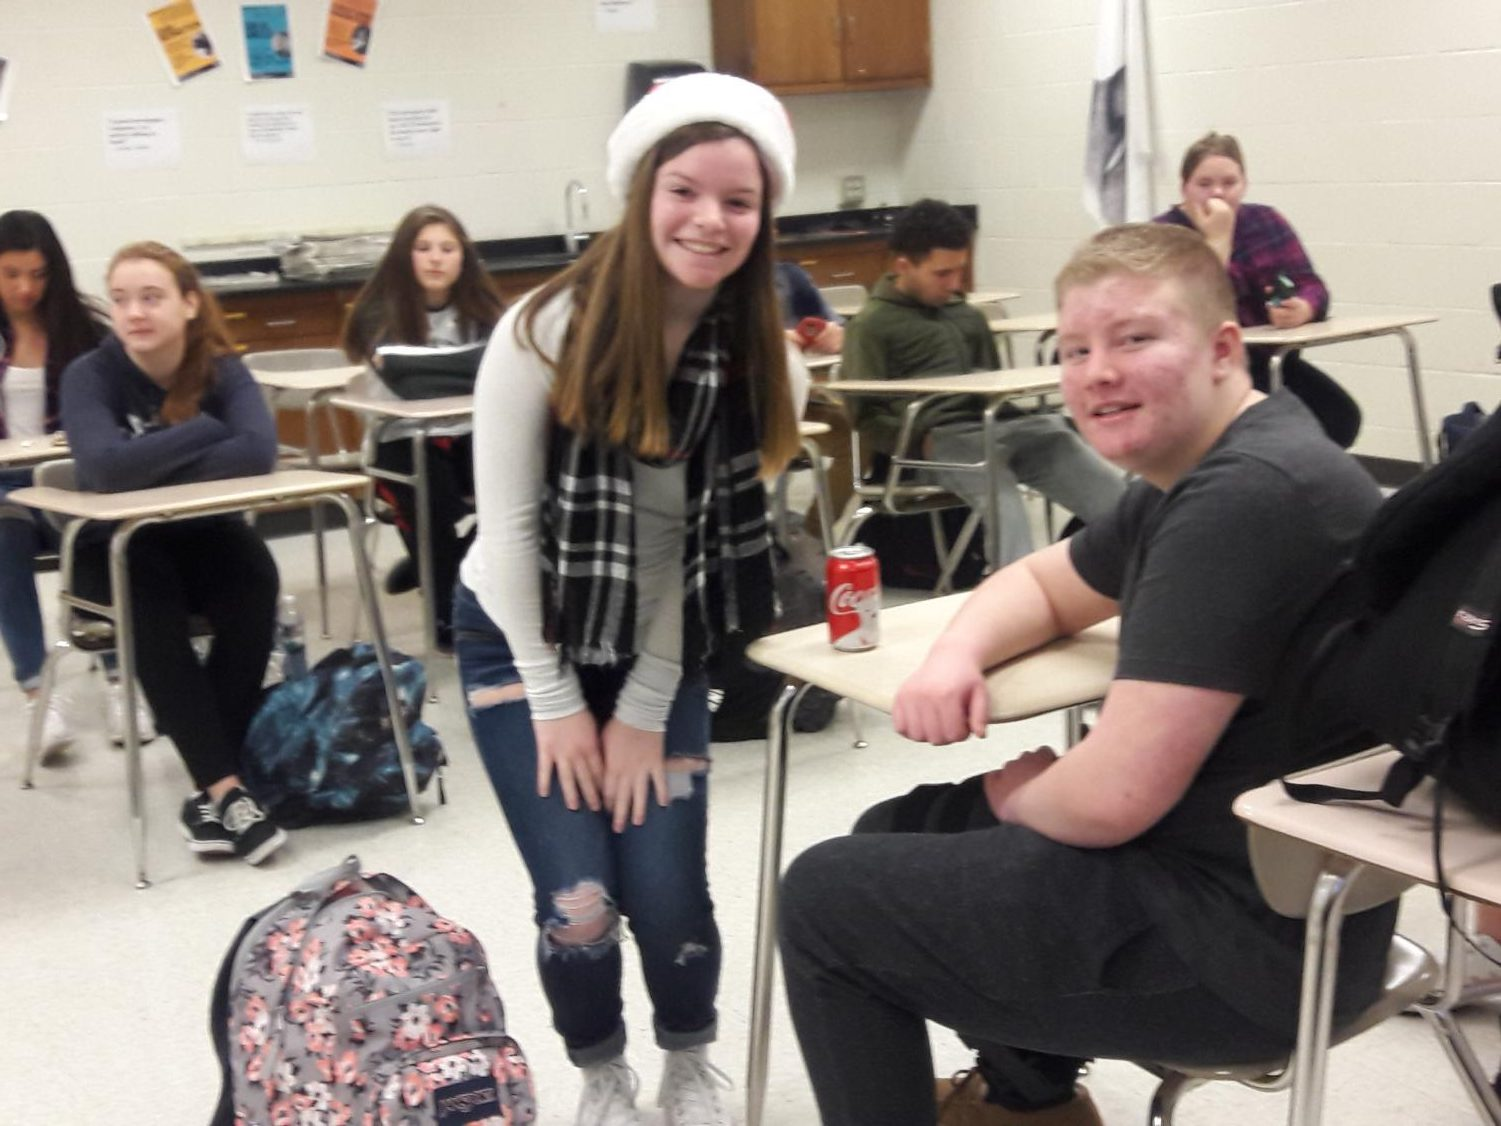 Sophomore Nick Ruppert was granted his wish of a Coke on Tuesday.